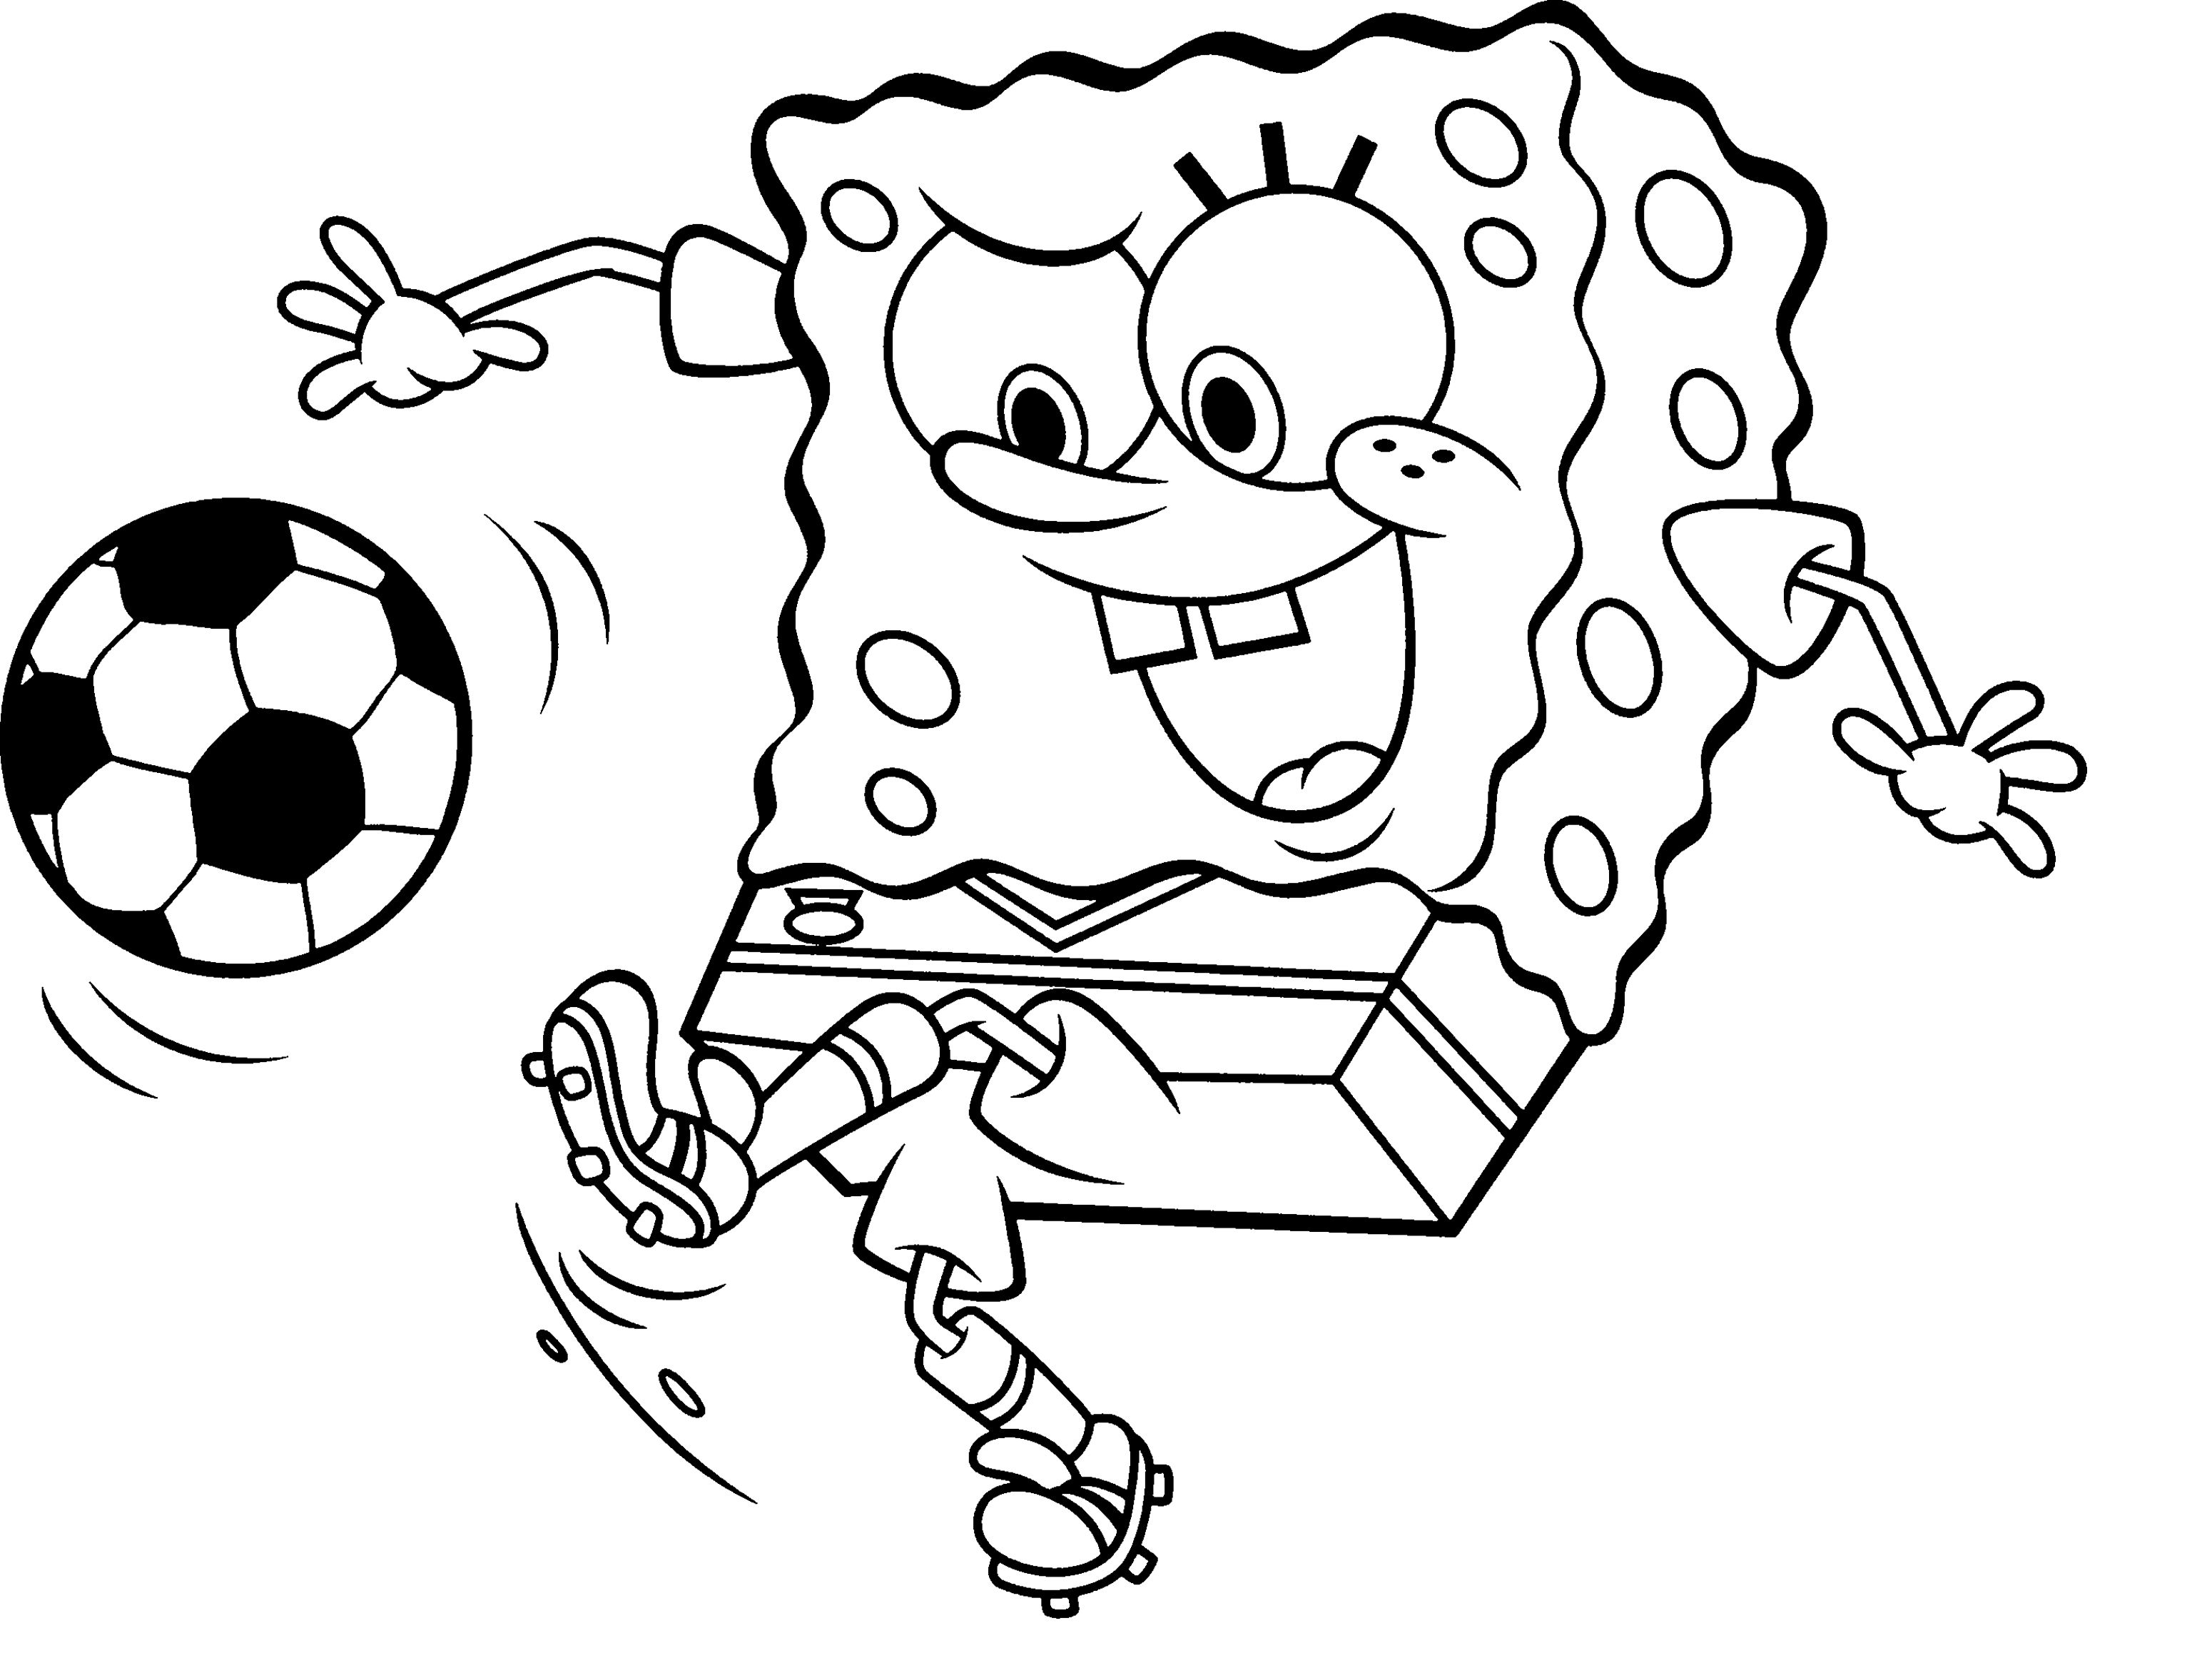 football color pages coloring page coloring pages for kids - Sports Pictures To Colour